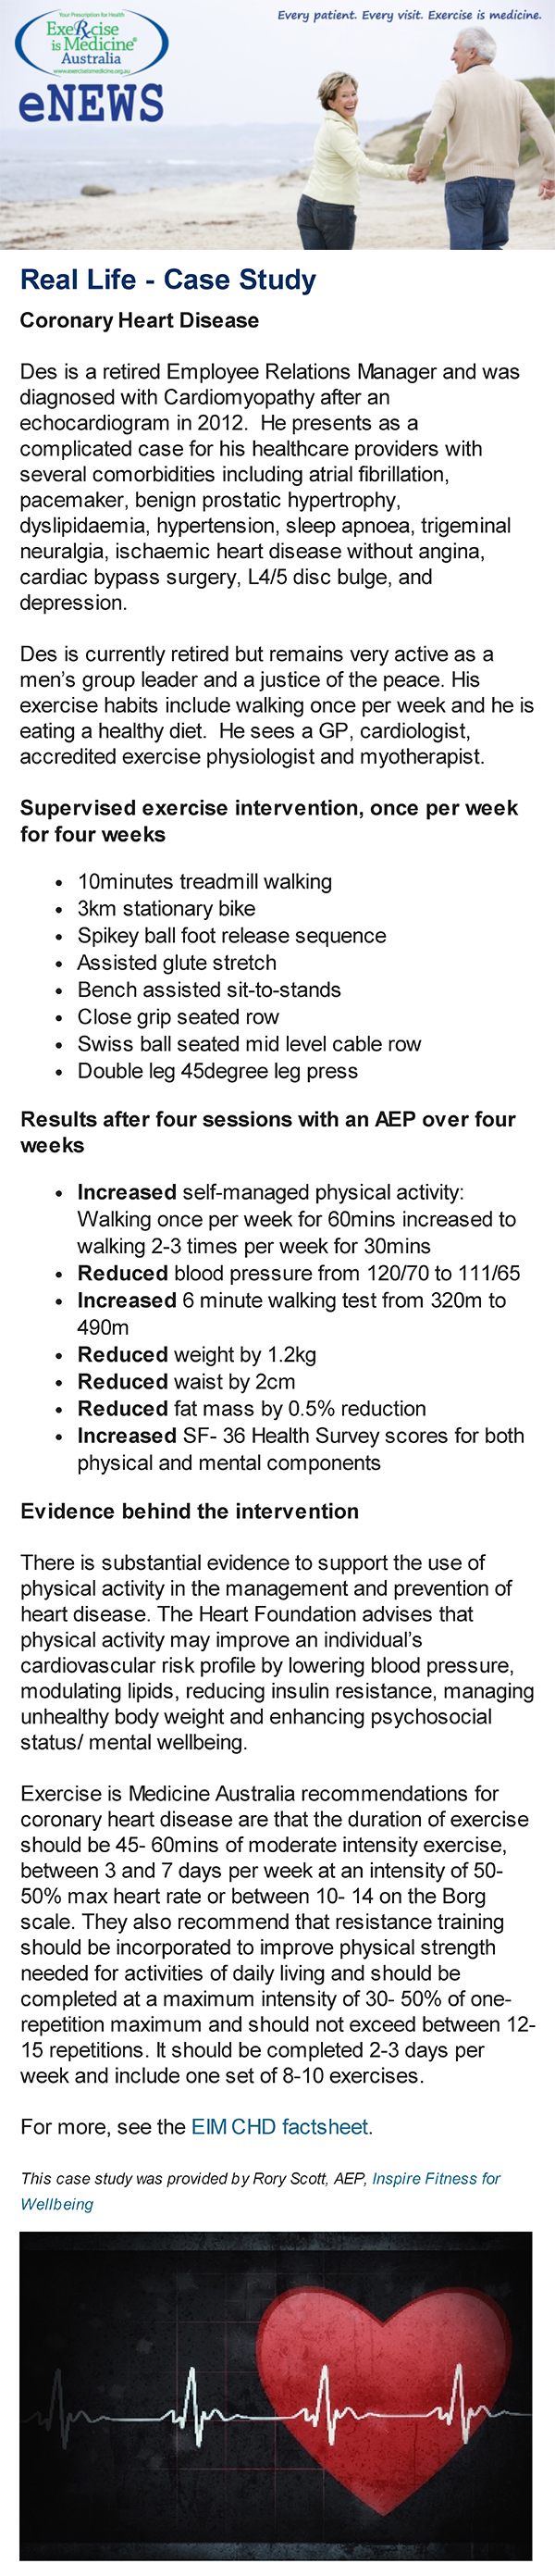 Exercise Is Medicine Australia features Inspire Fitness Exercise Physiology case study